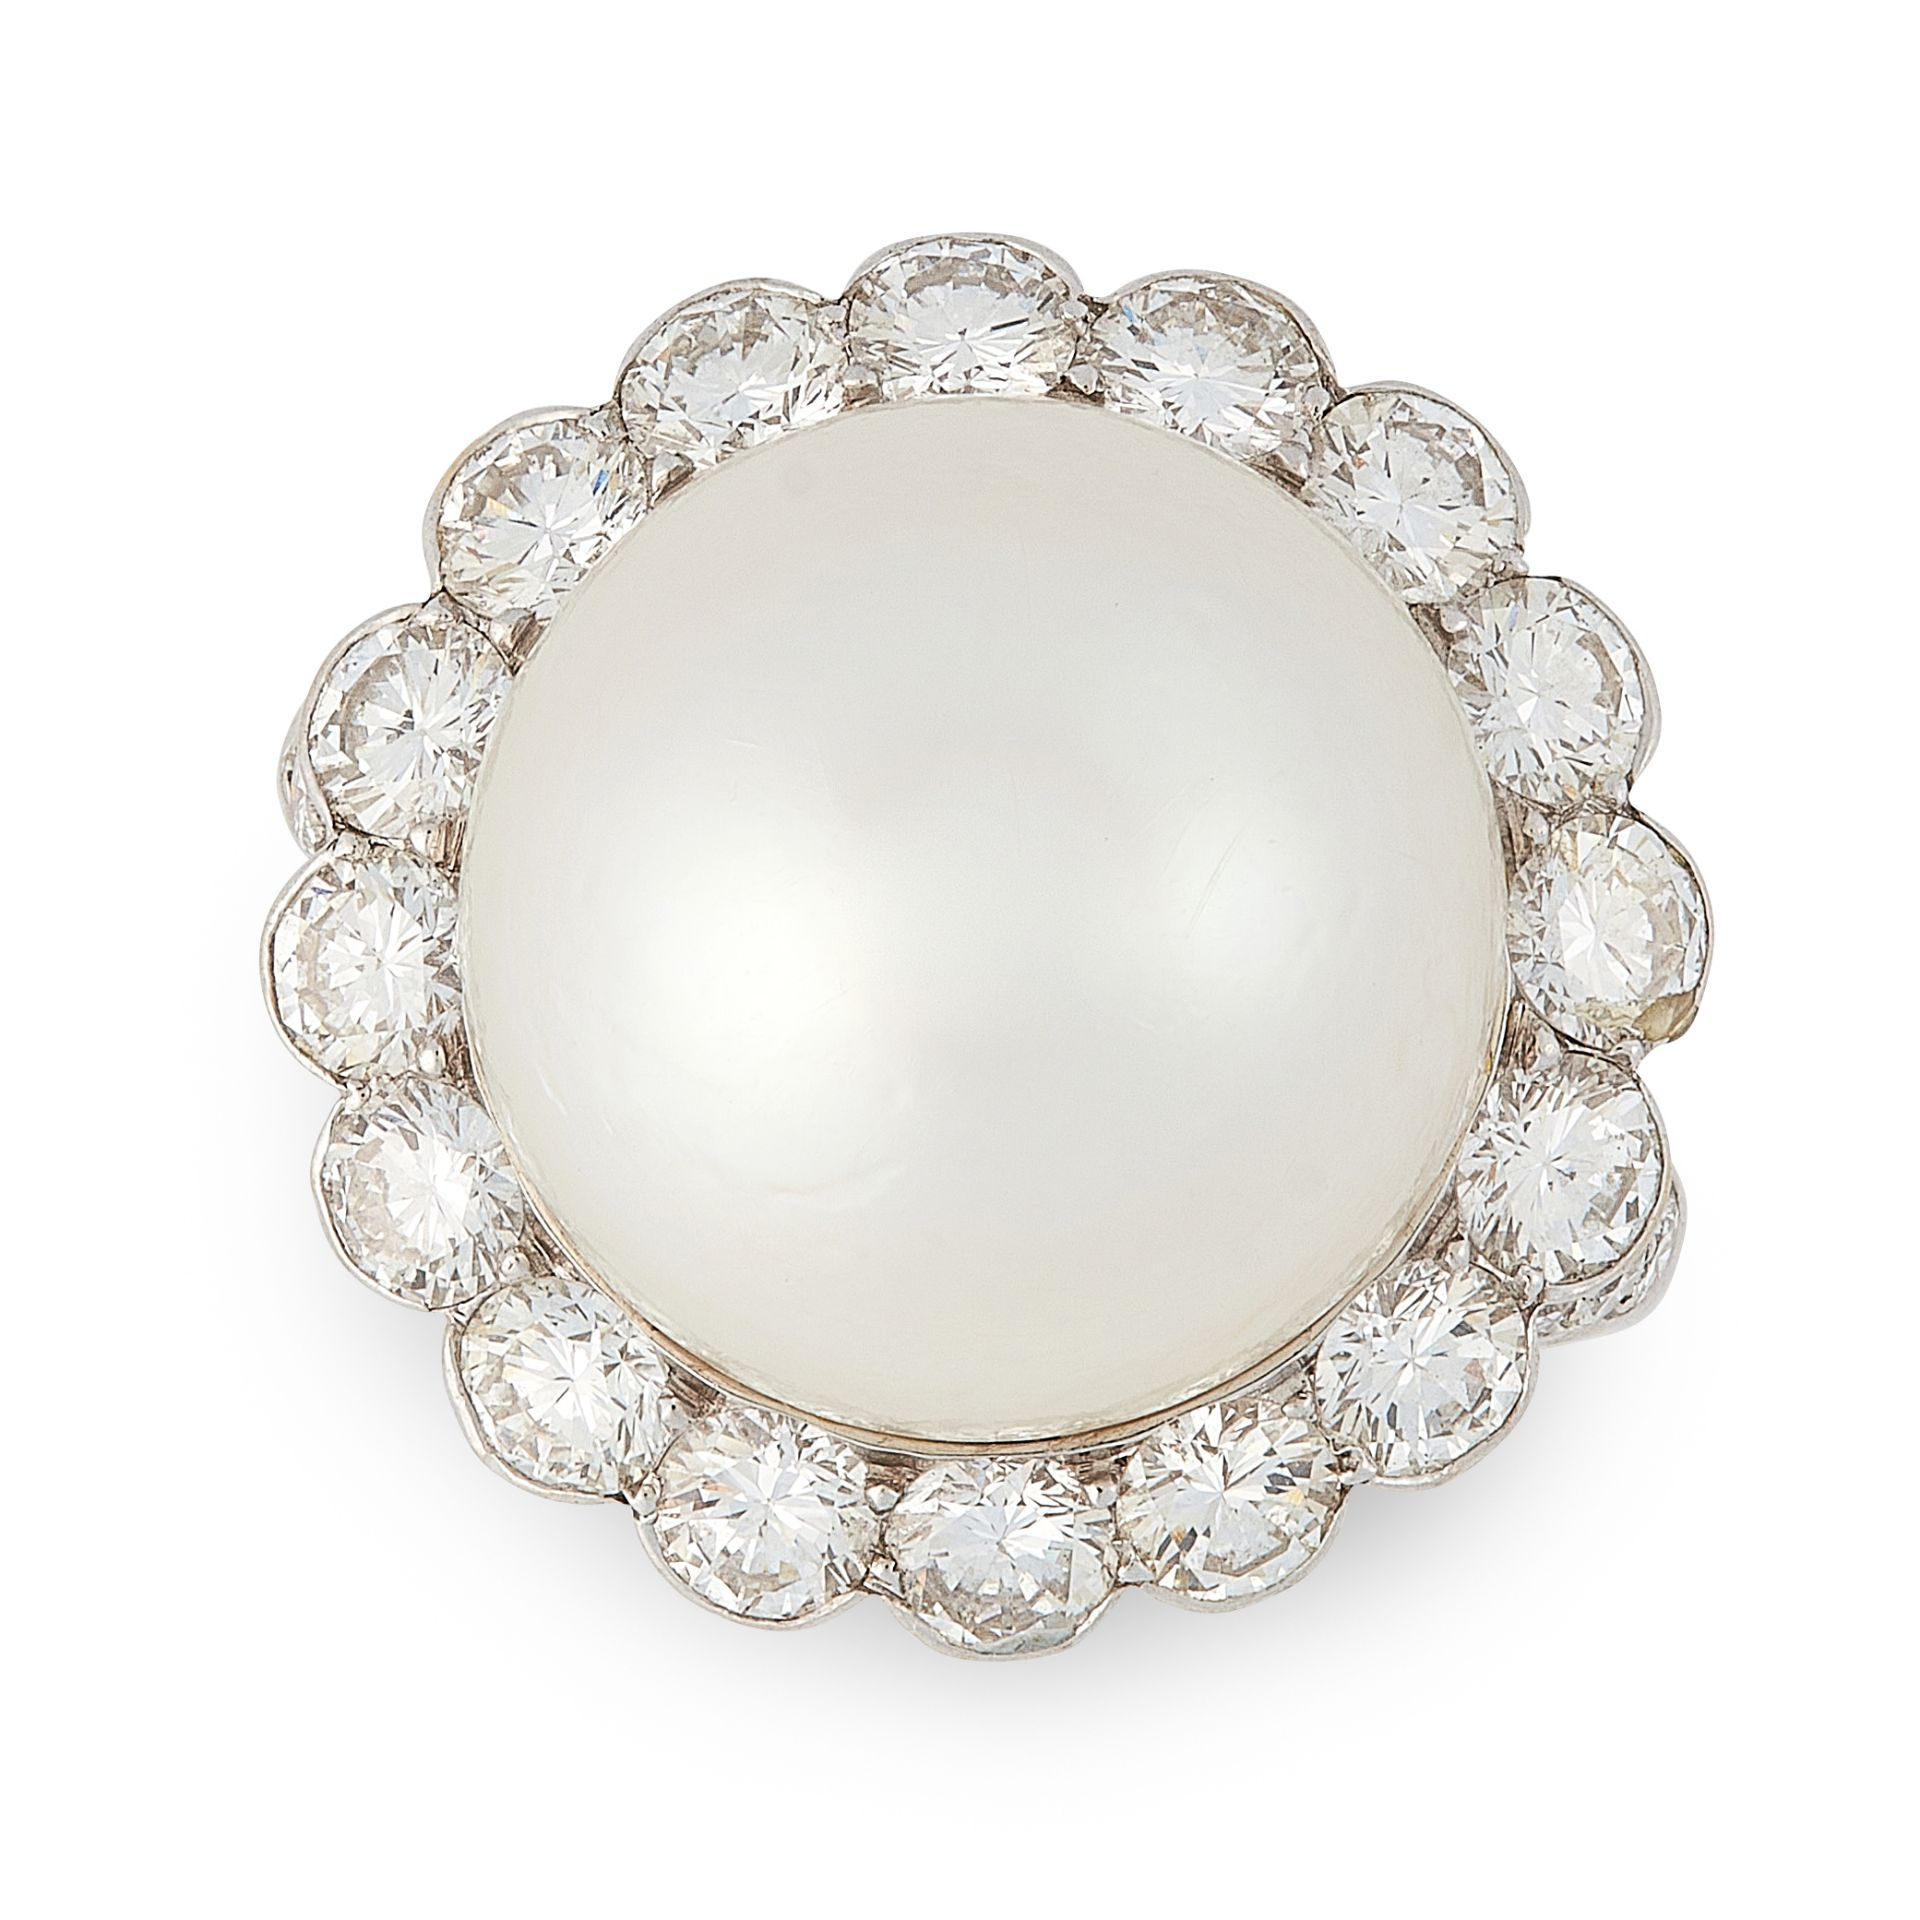 Los 15 - A VINTAGE CULTURED PEARL AND DIAMOND RING, VAN CLEEF & ARPELS in 18ct white gold, set with a large